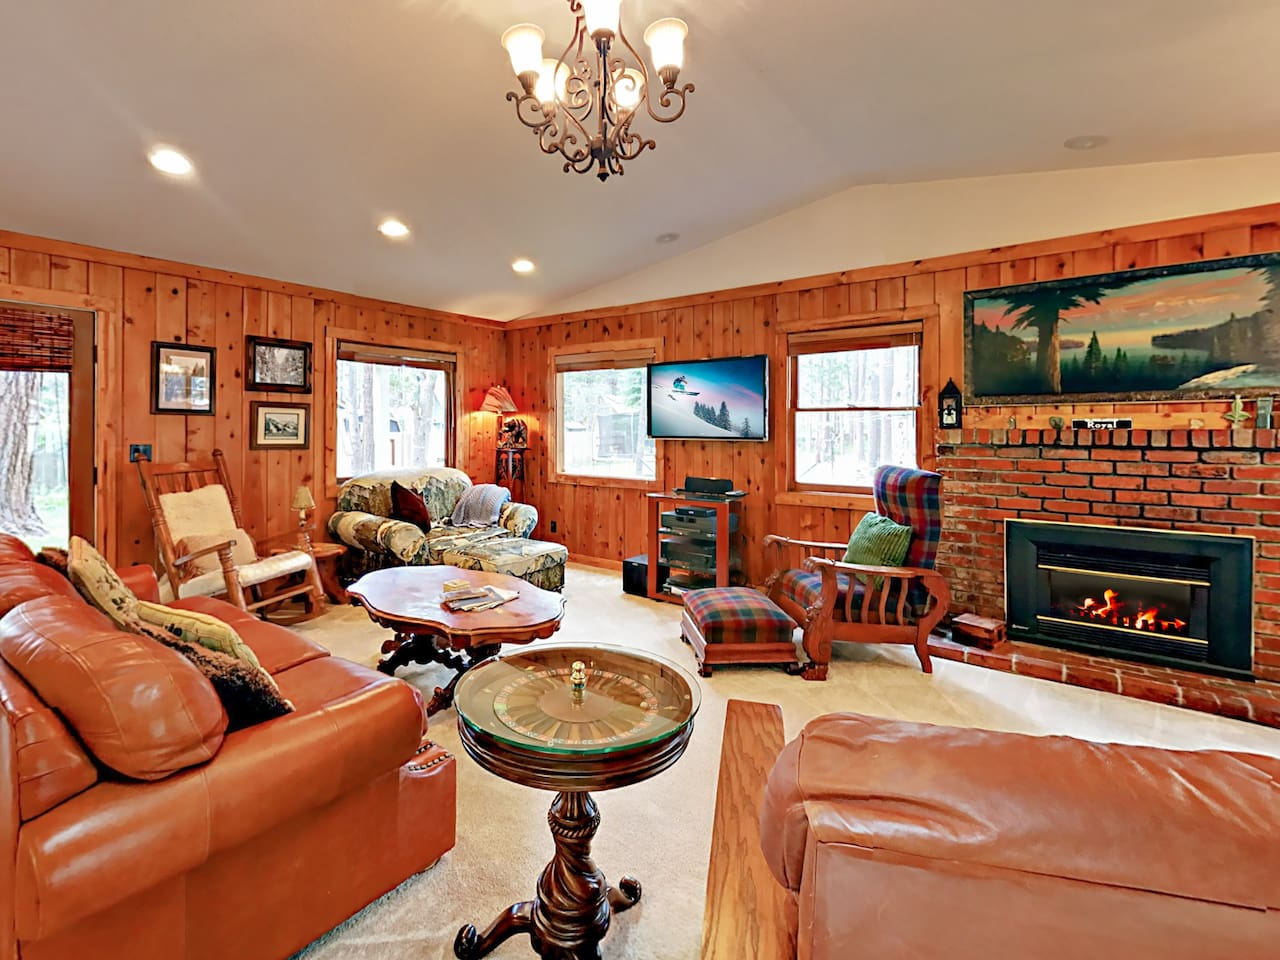 Knotty pine walls, a gas fireplace, and plush leather furniture create a welcoming lodge feel.